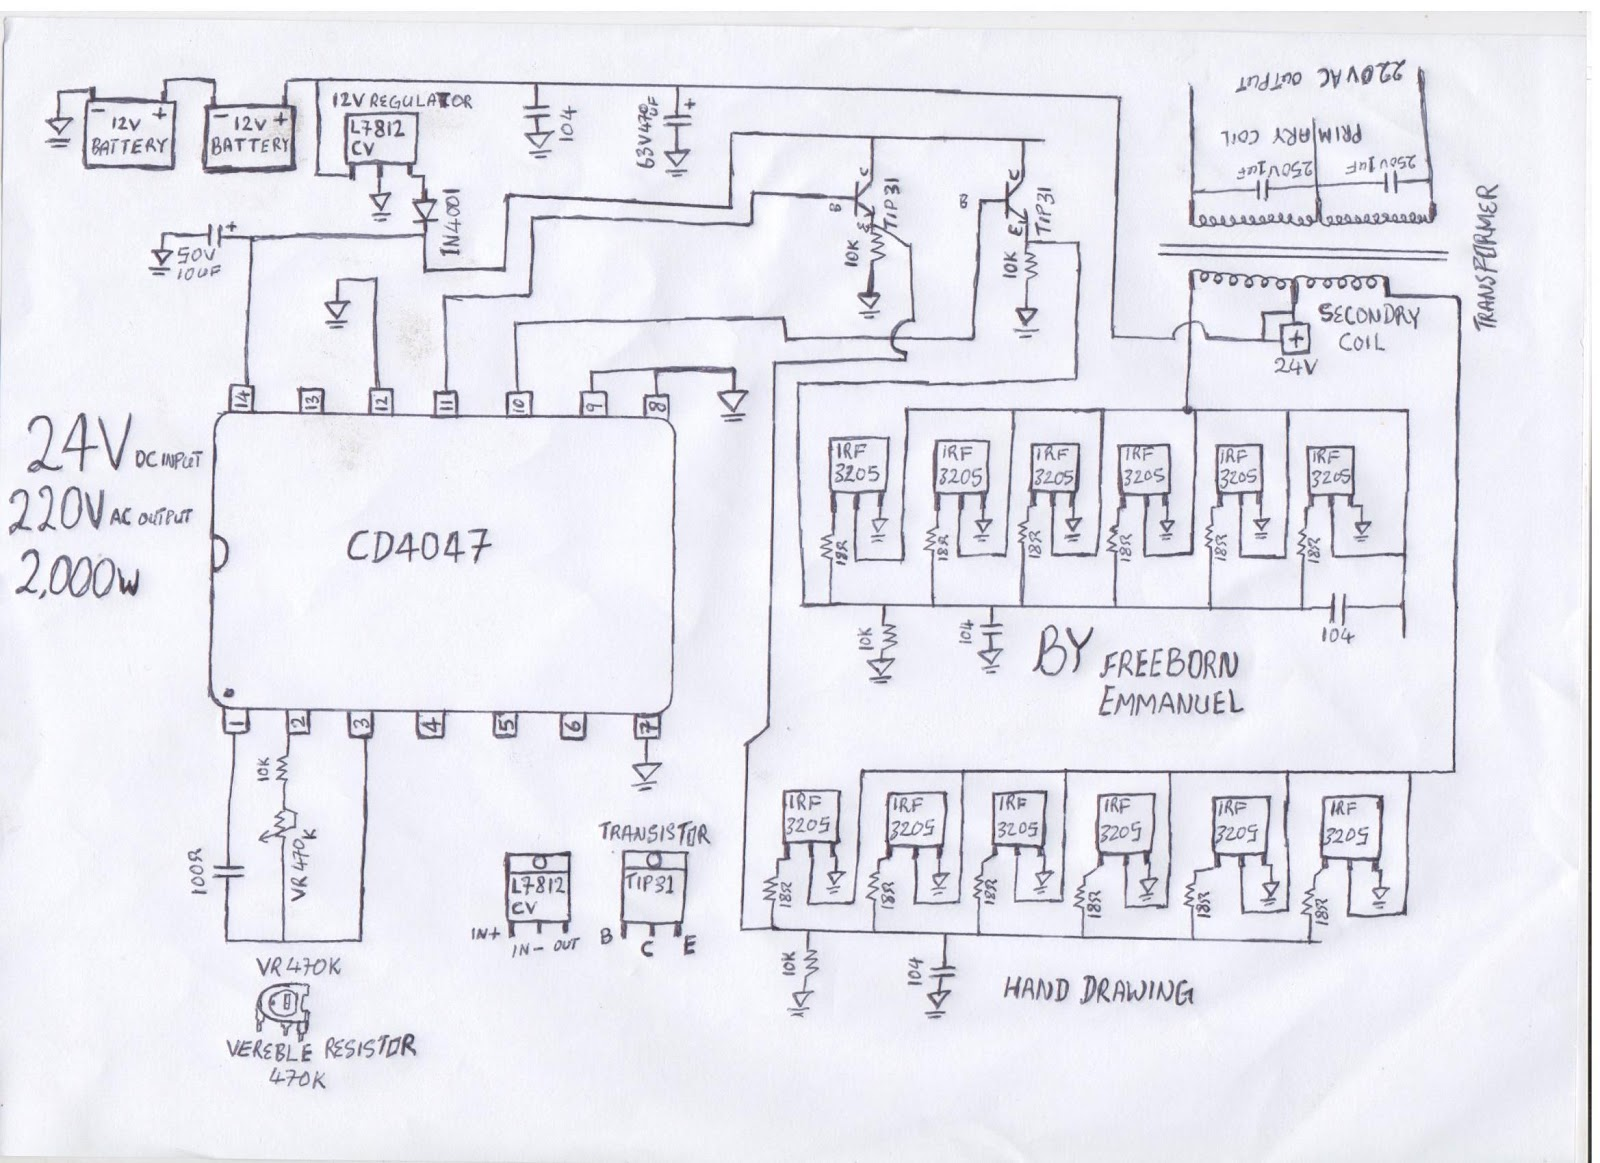 Inverter Circuit Page 4 Power Supply Circuits How To Make A Simple At Home Build 2kva Diagram